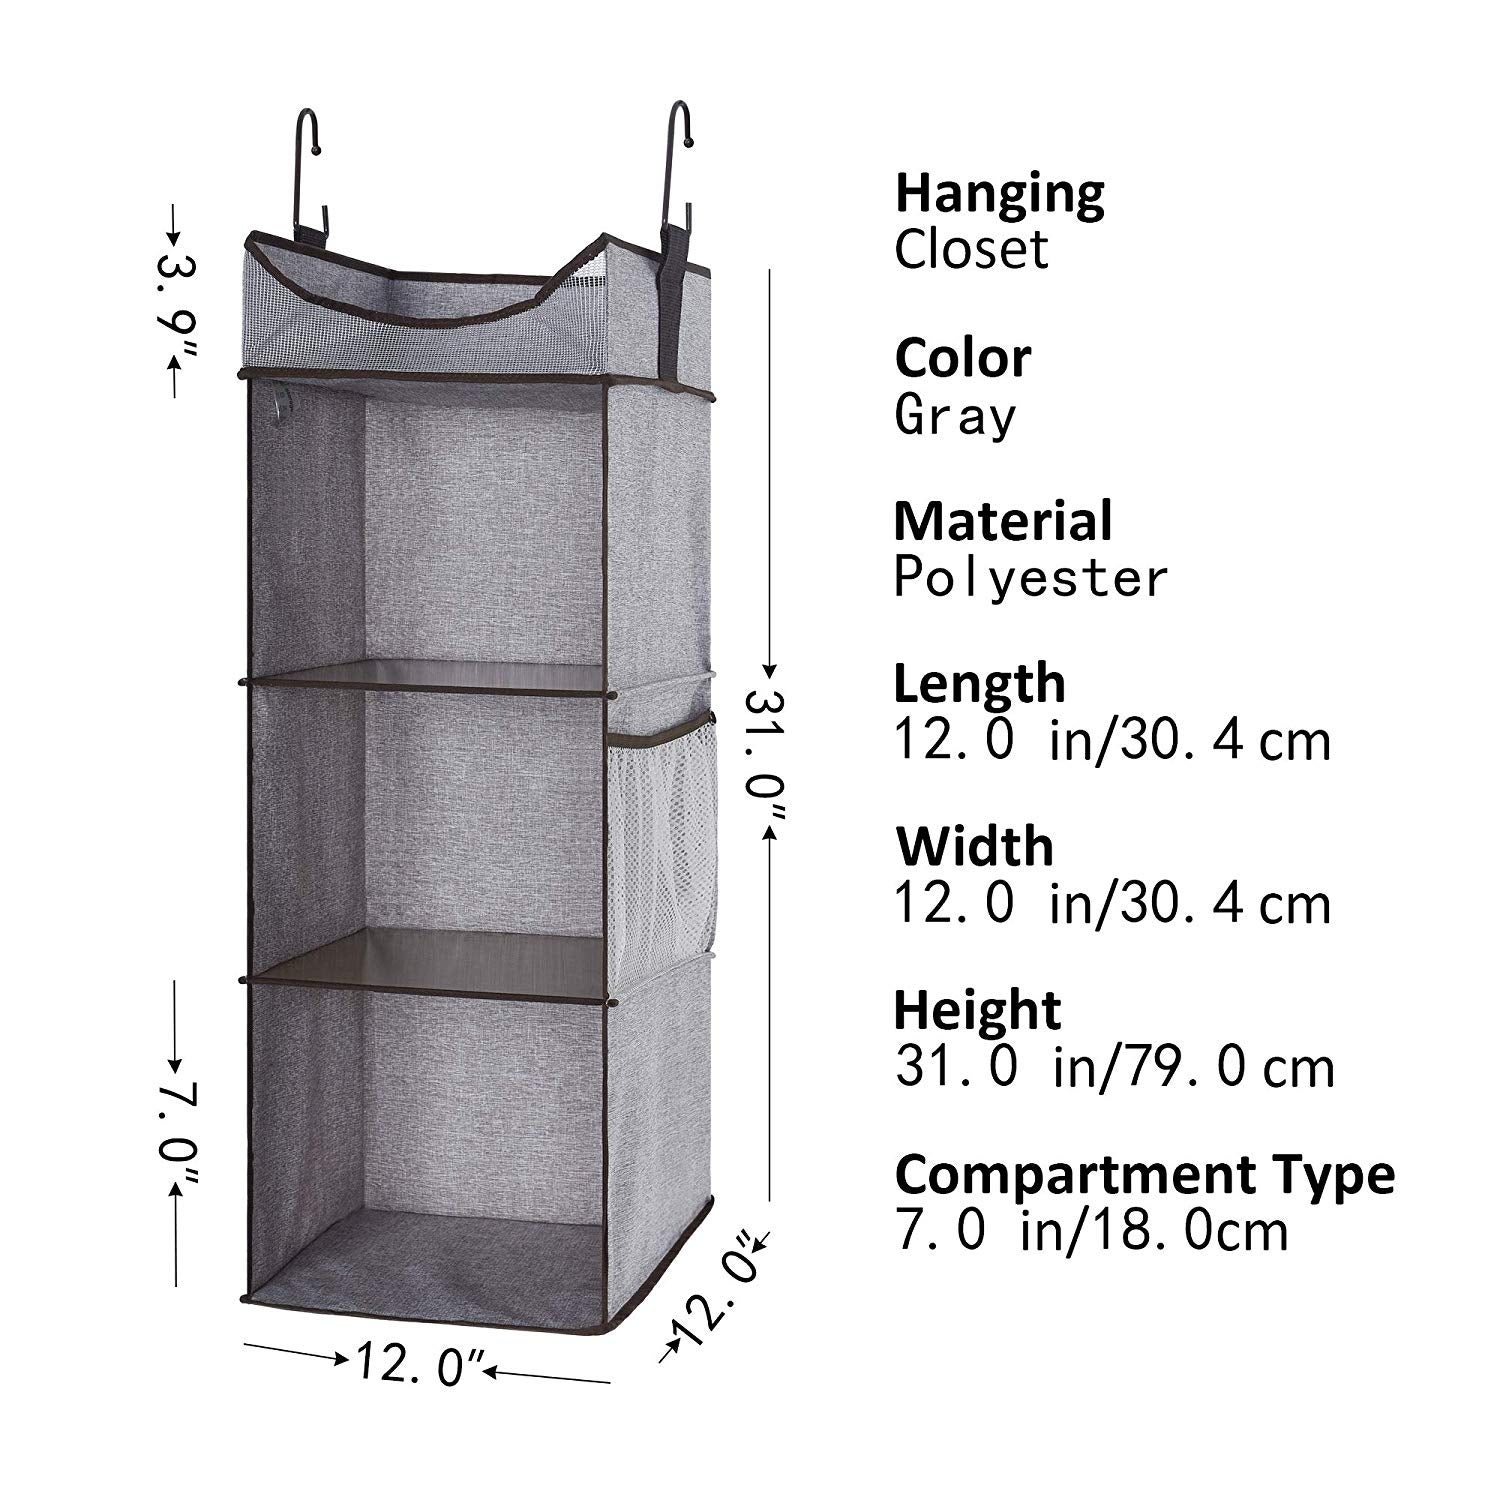 Shop Storageworks 3 Shelves Hanging Closet Organizer Gray 120